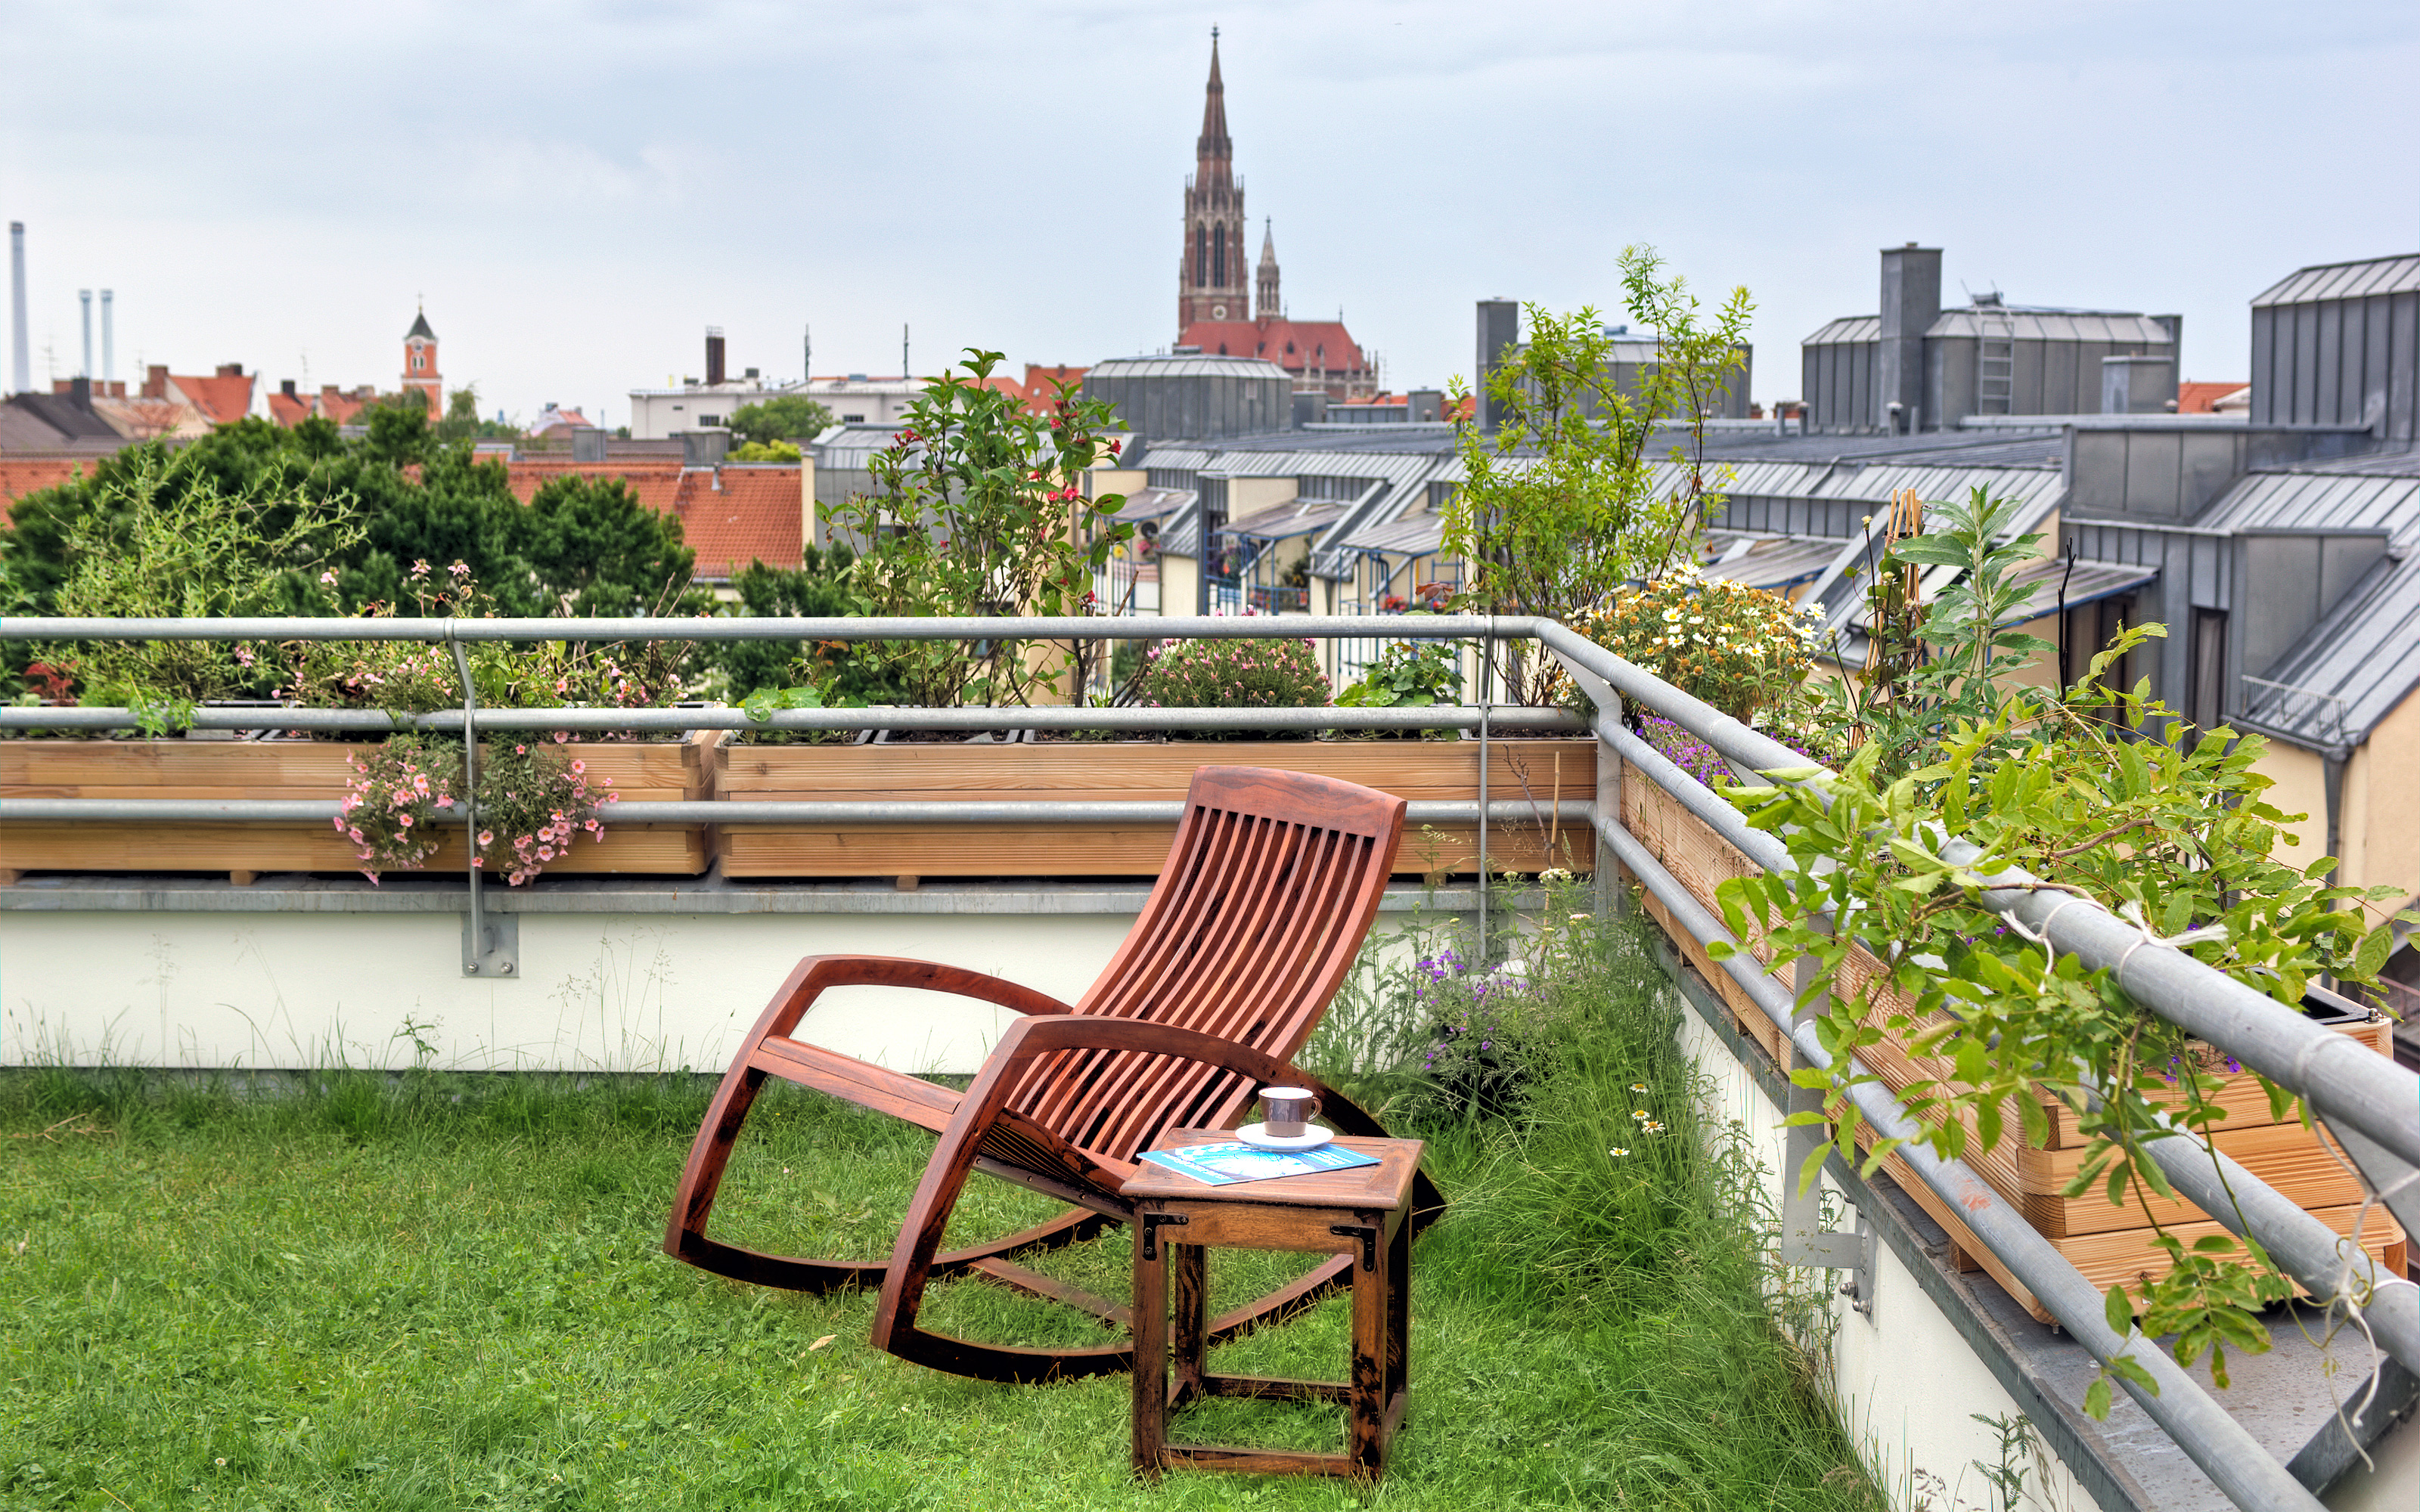 Rocking chair on a roof garden with lawn in the city